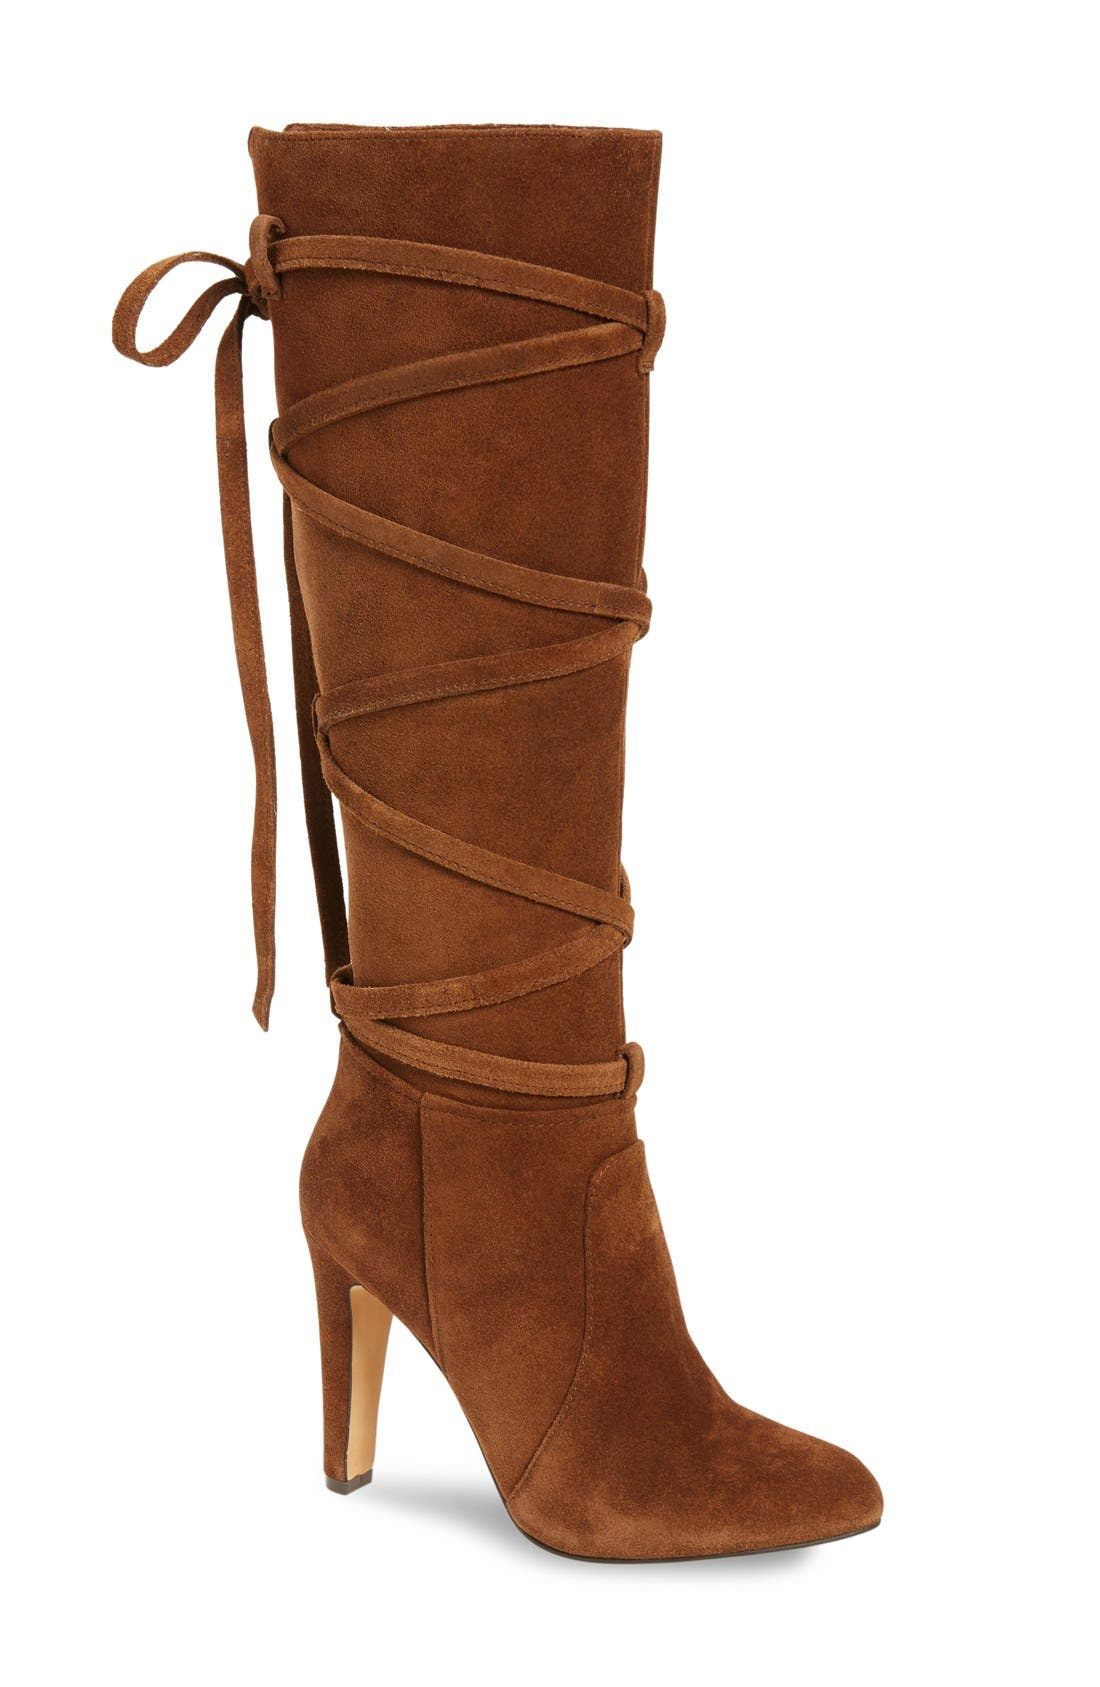 Alternate Image 1 Selected - Vince Camuto 'Millay' Knee High Boot (Women)